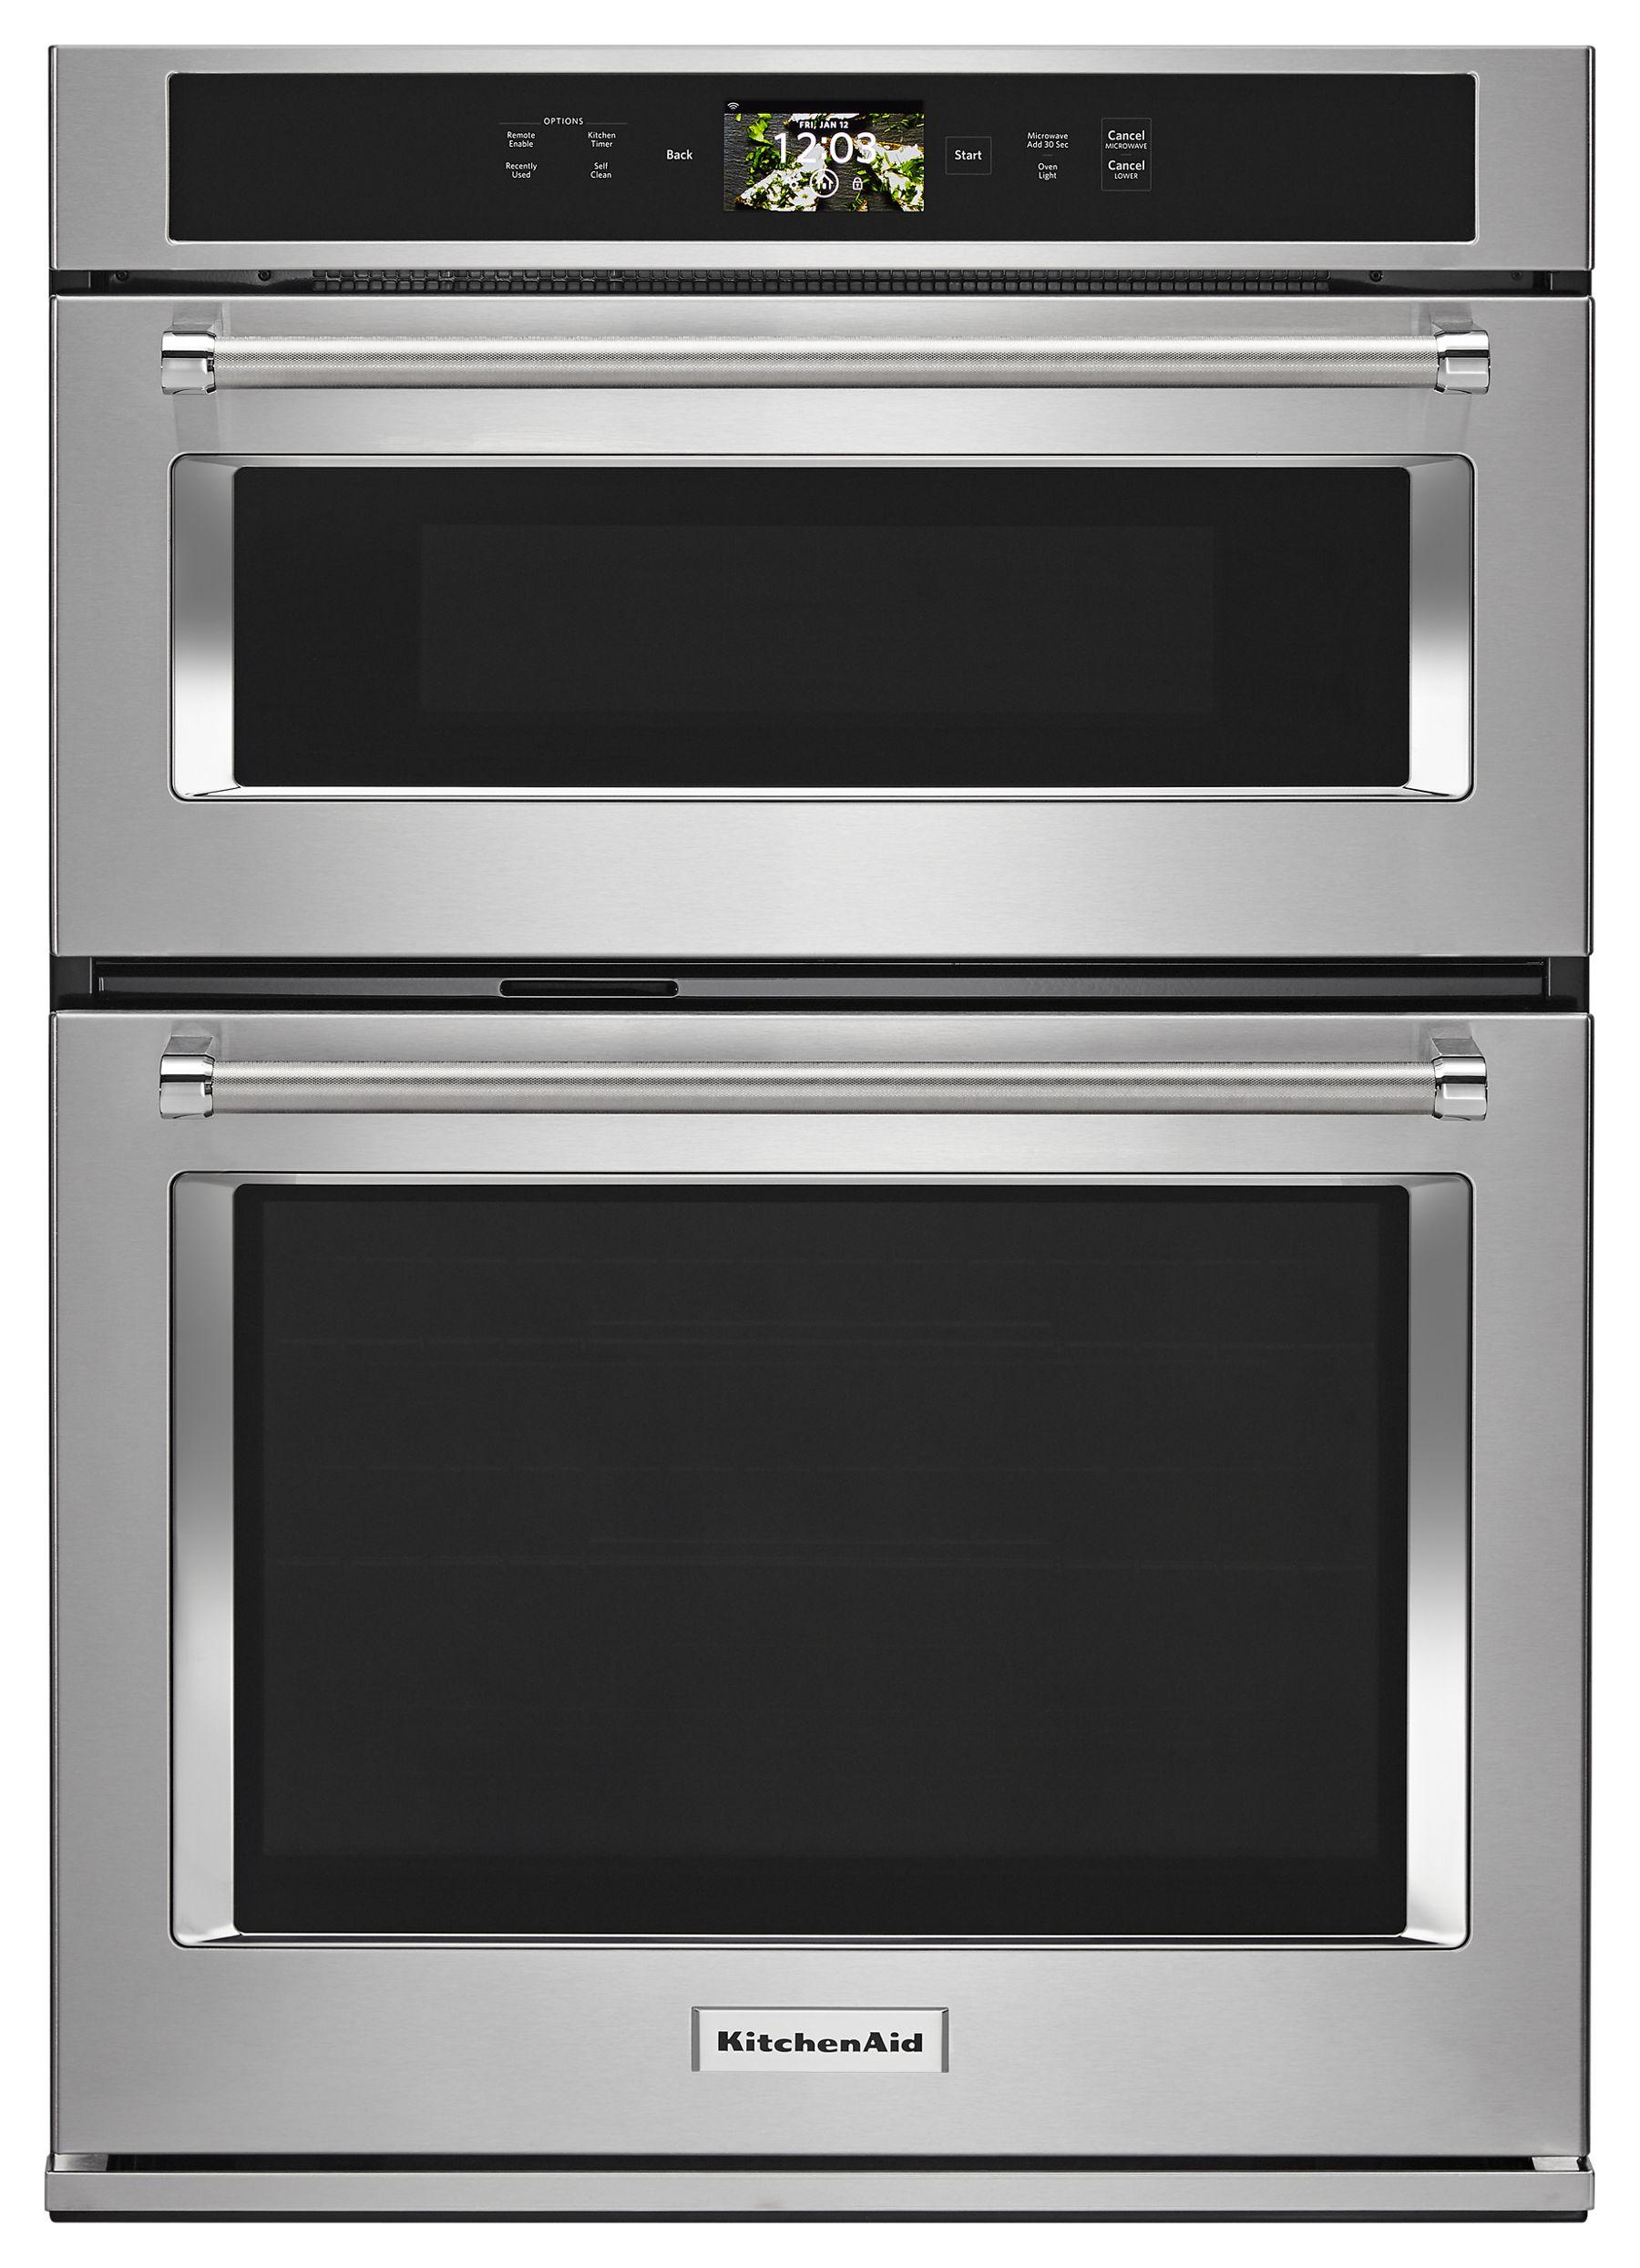 """KitchenAidSmart Oven+ 30"""" Combination Oven With Powered Attachments - Stainless Steel"""